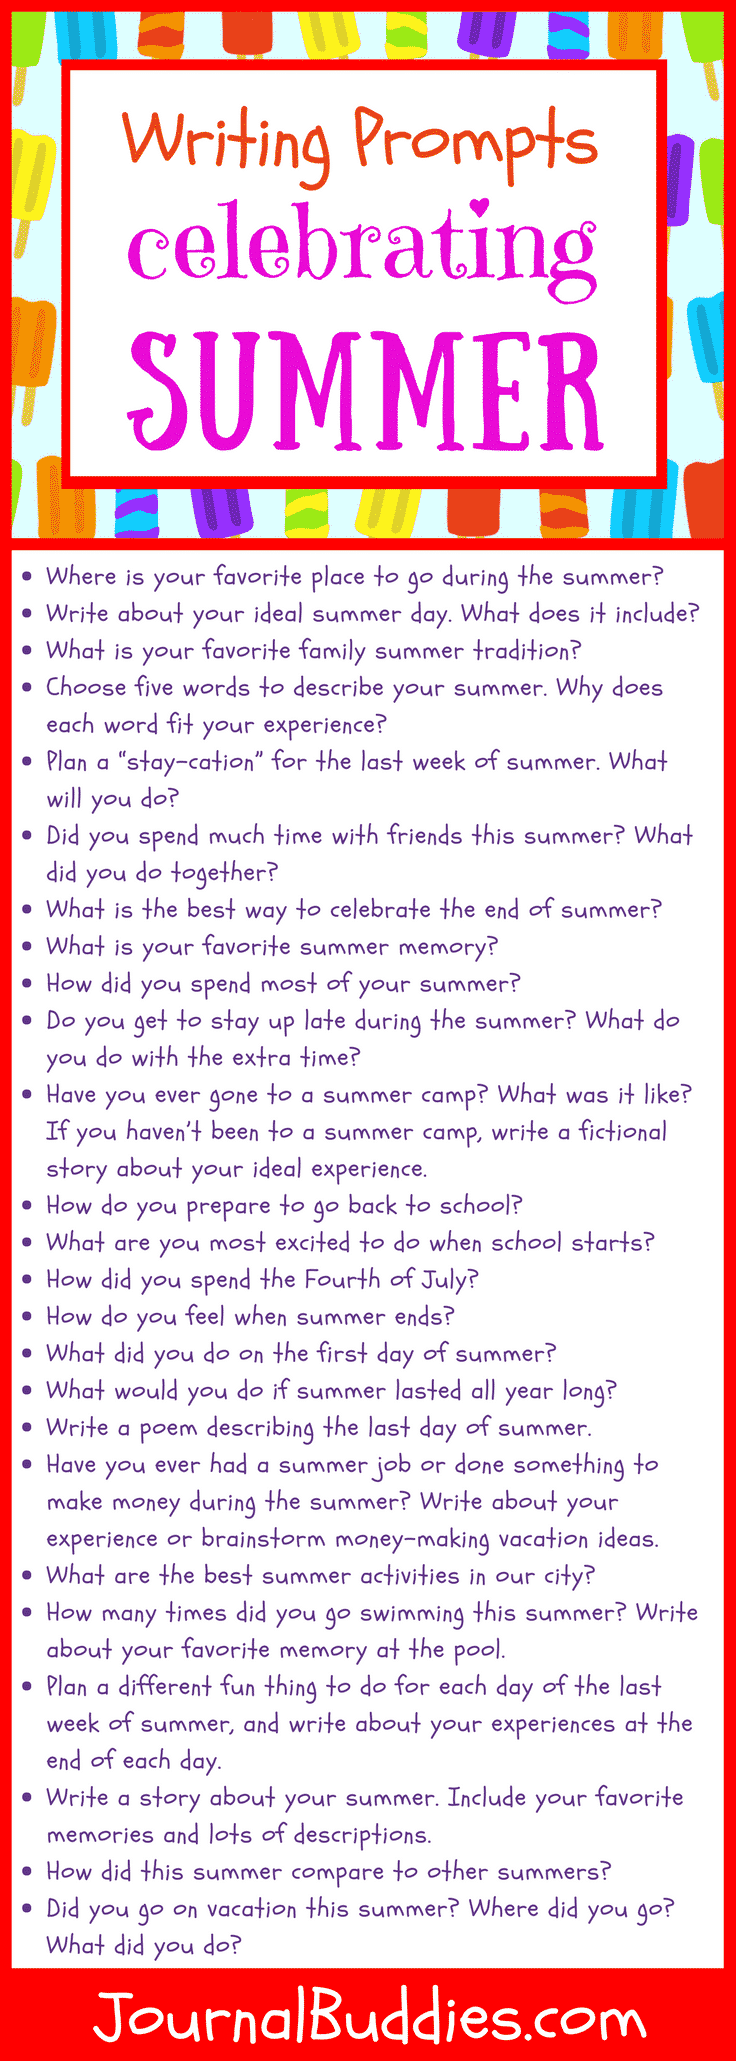 In these 53 new journal prompts celebrating the end of summer, kids will consider their favorite summer activities and their ideal summer days. They'll think about the feelings they get on the day before school starts and the fun they had during summer's first week.